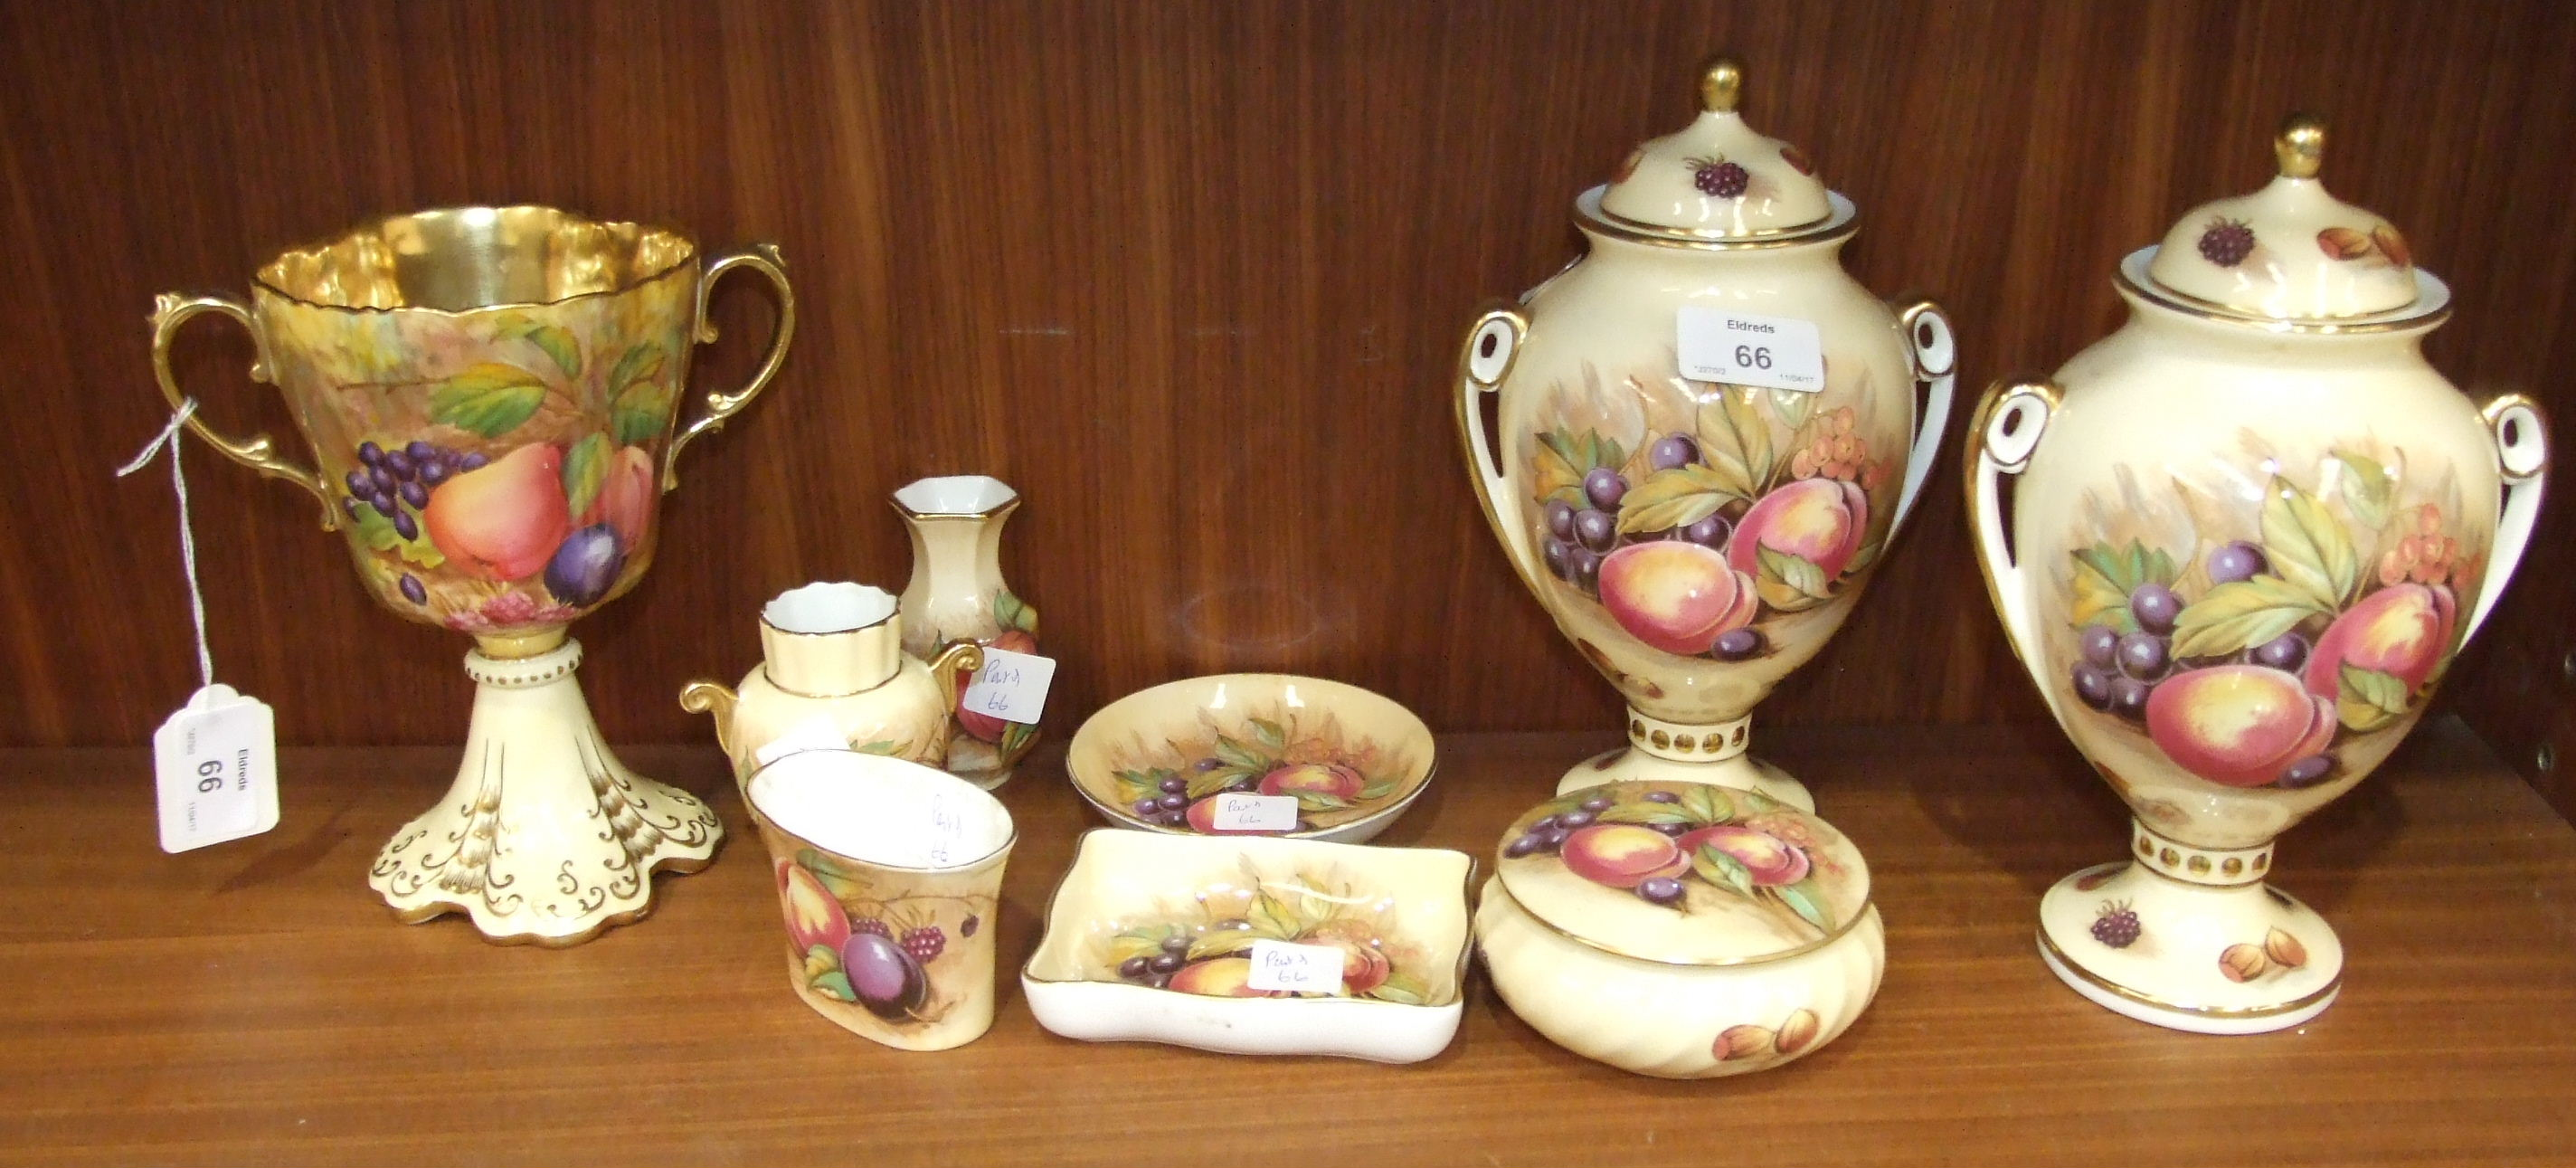 An Aynsley two-handled vase decorated with fruit by D Jones, with gilded interior, 18cm high, a pair